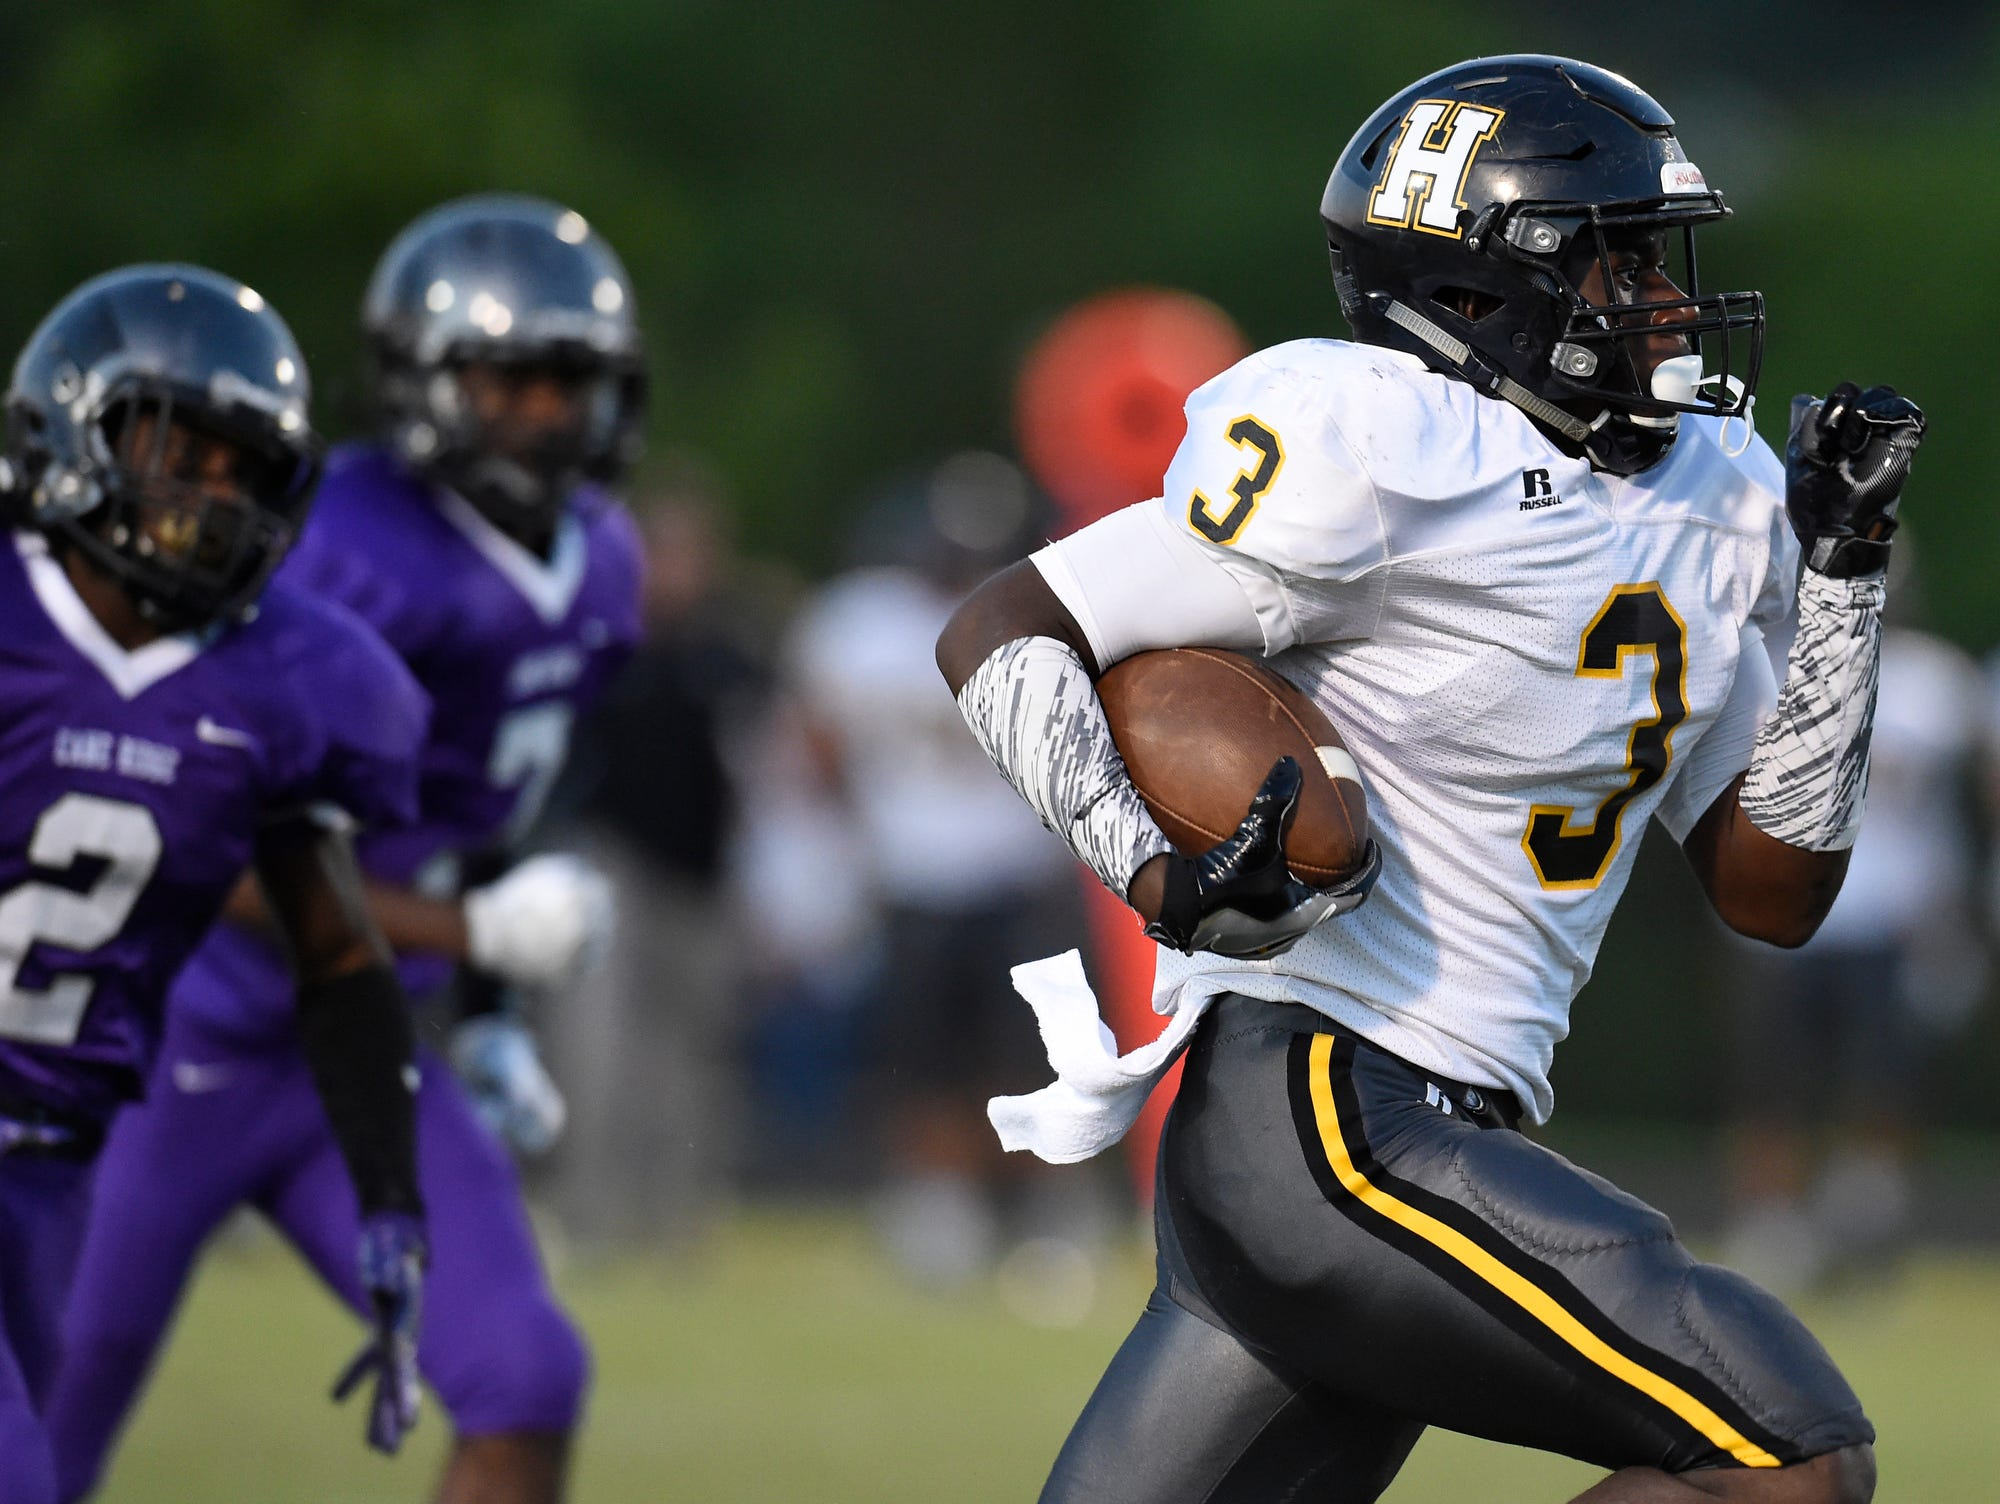 Hendersonville's Anthony Hughes (3) scored four touchdowns in the Commandos' 47-46 loss at Cane Ridge